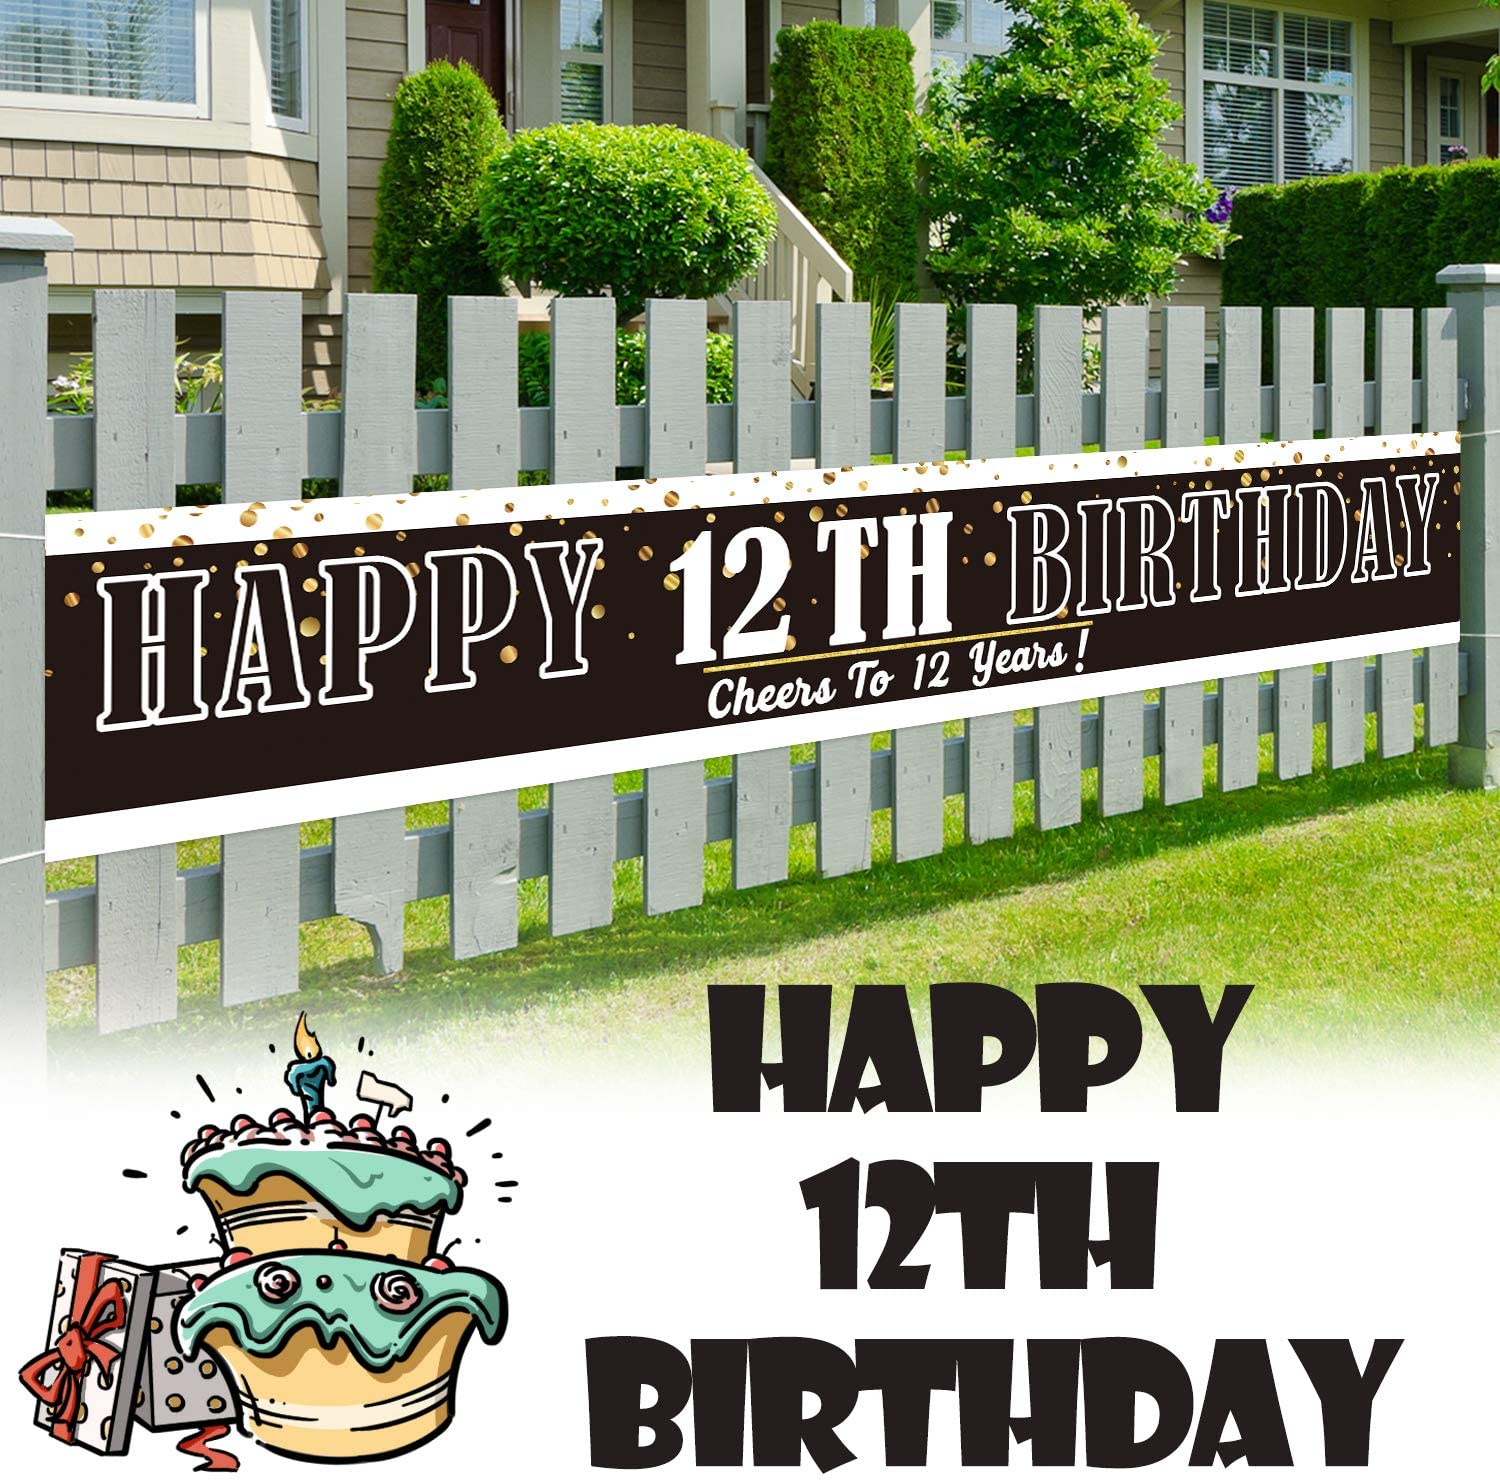 LINGPAR 9.8 x 1.6 ft Large Sign Happy 12th Birthday Banner - Cheers to 12 Years Old Decor